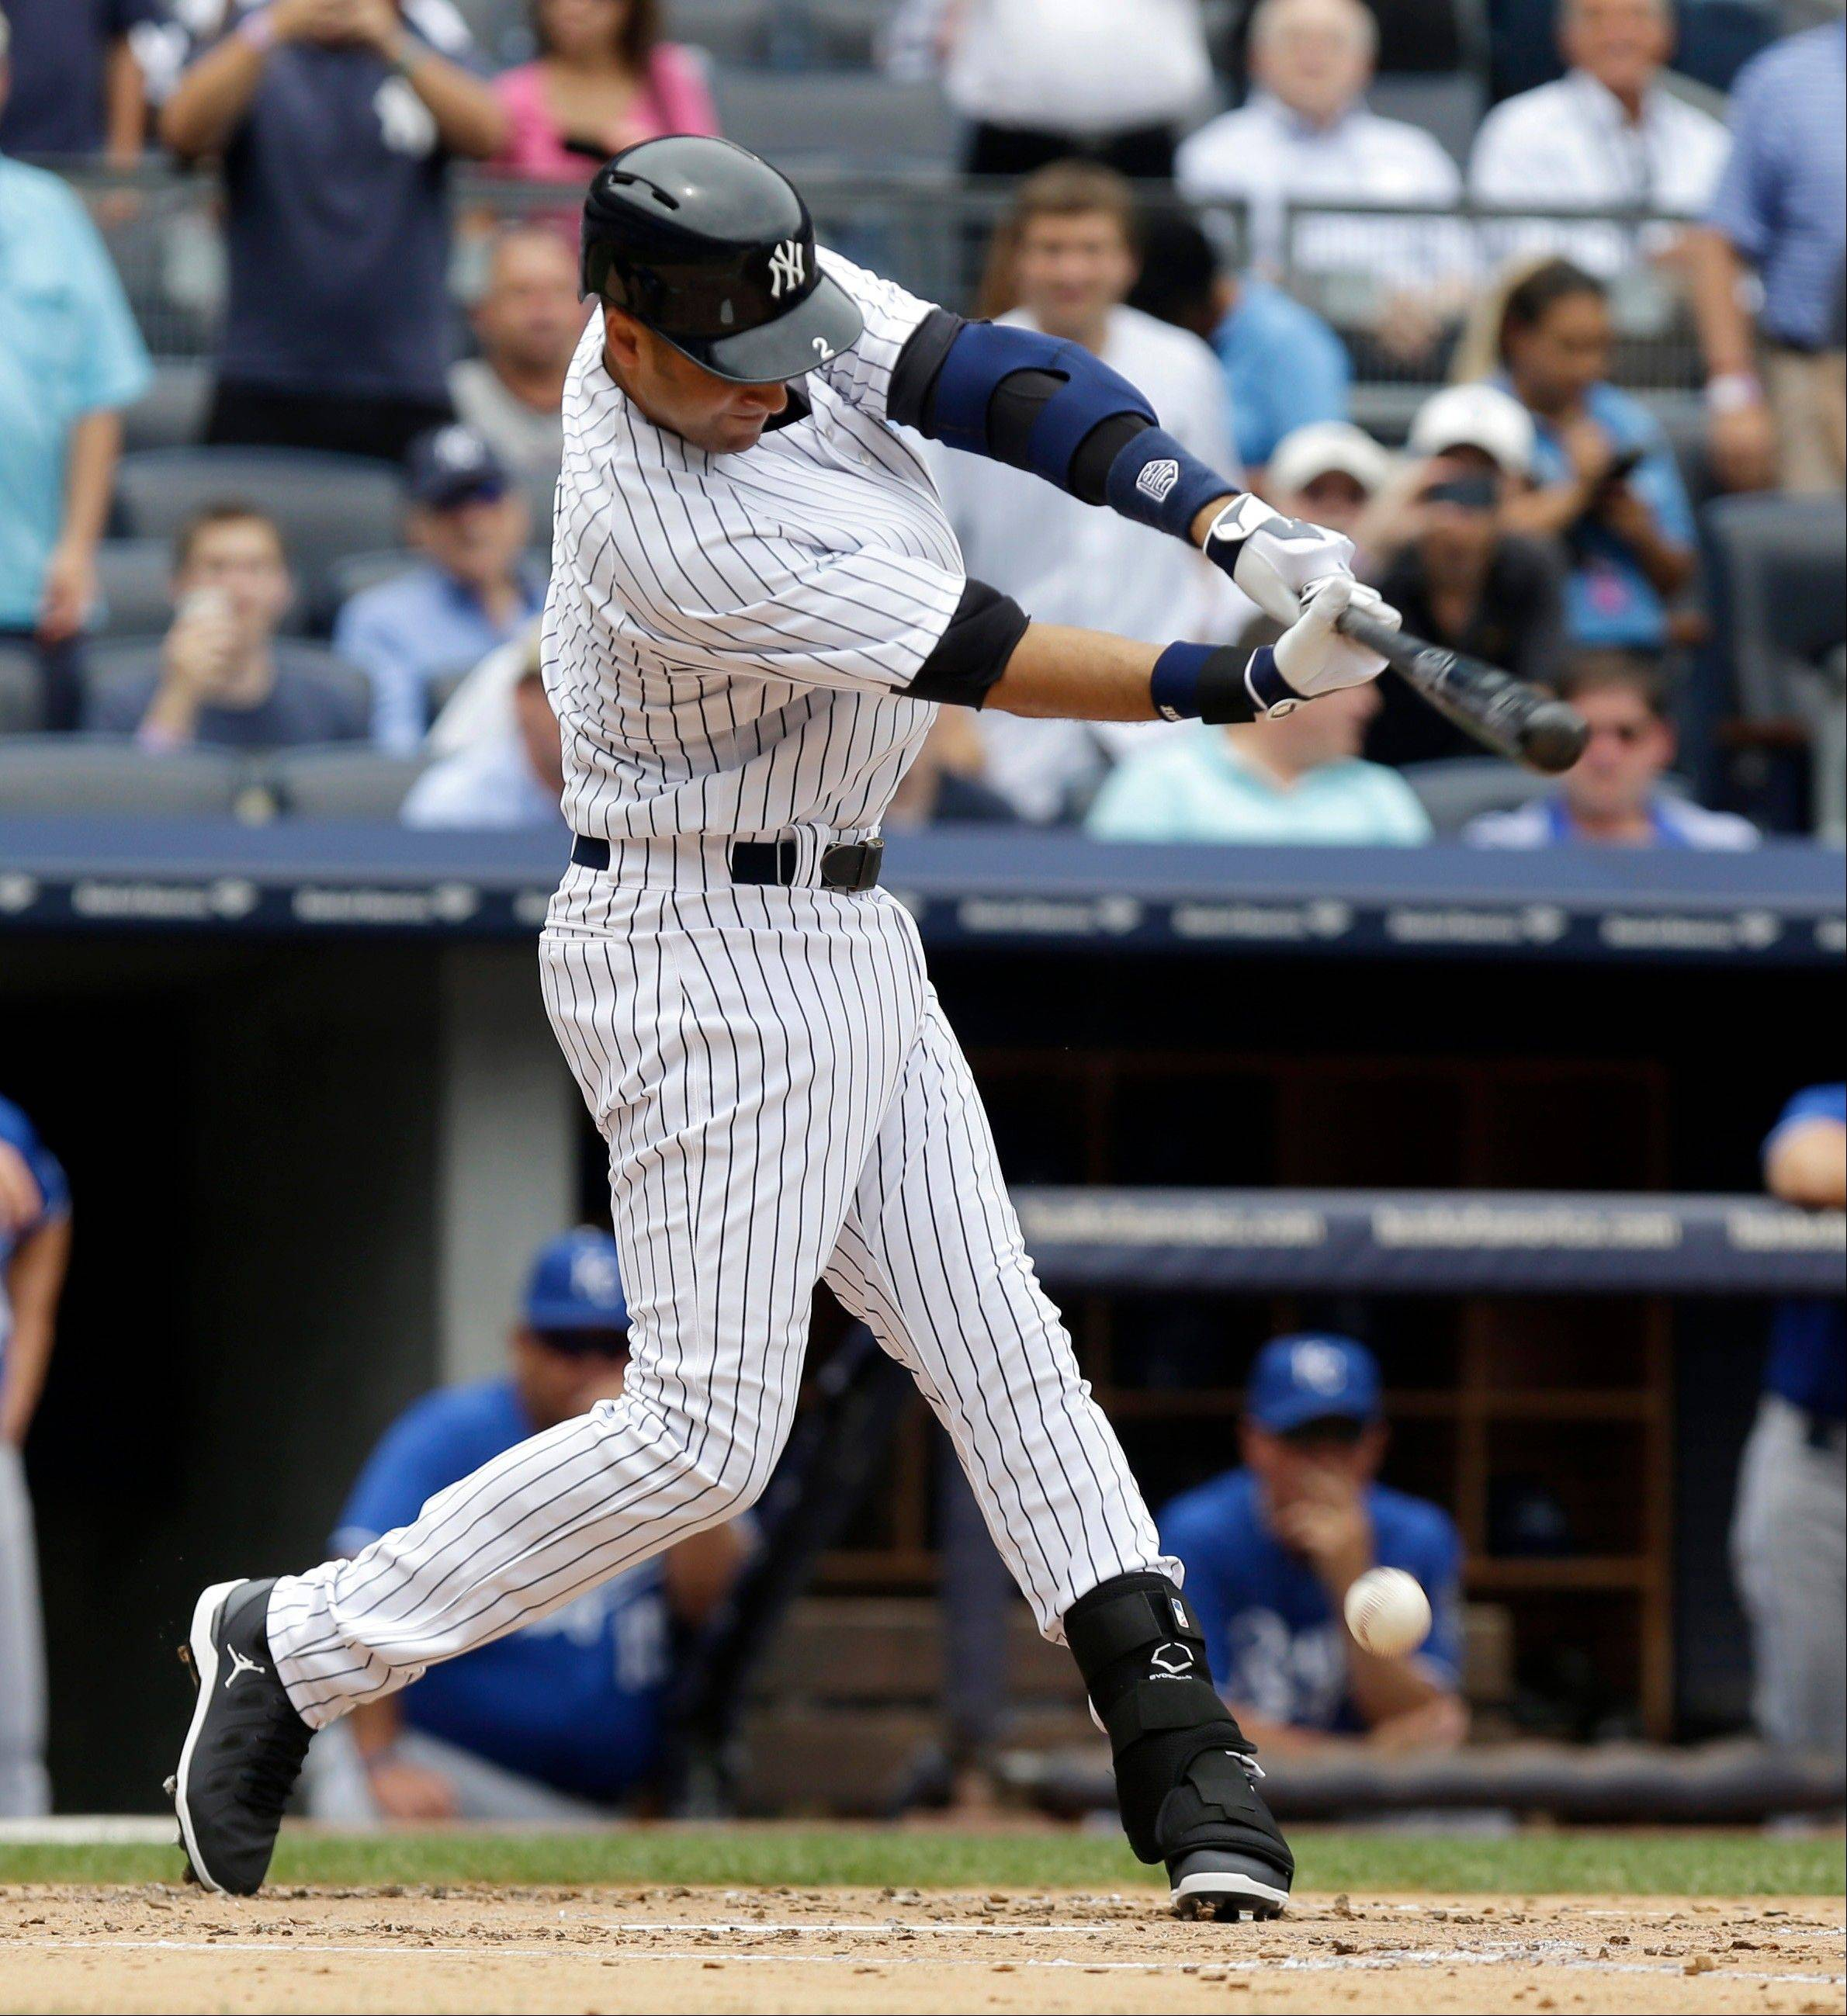 New York Yankees' Derek Jeter singles during the first inning of the baseball game against the Kansas City Royals at Yankee Stadium on Thursday, July 11, 2013, in New York.